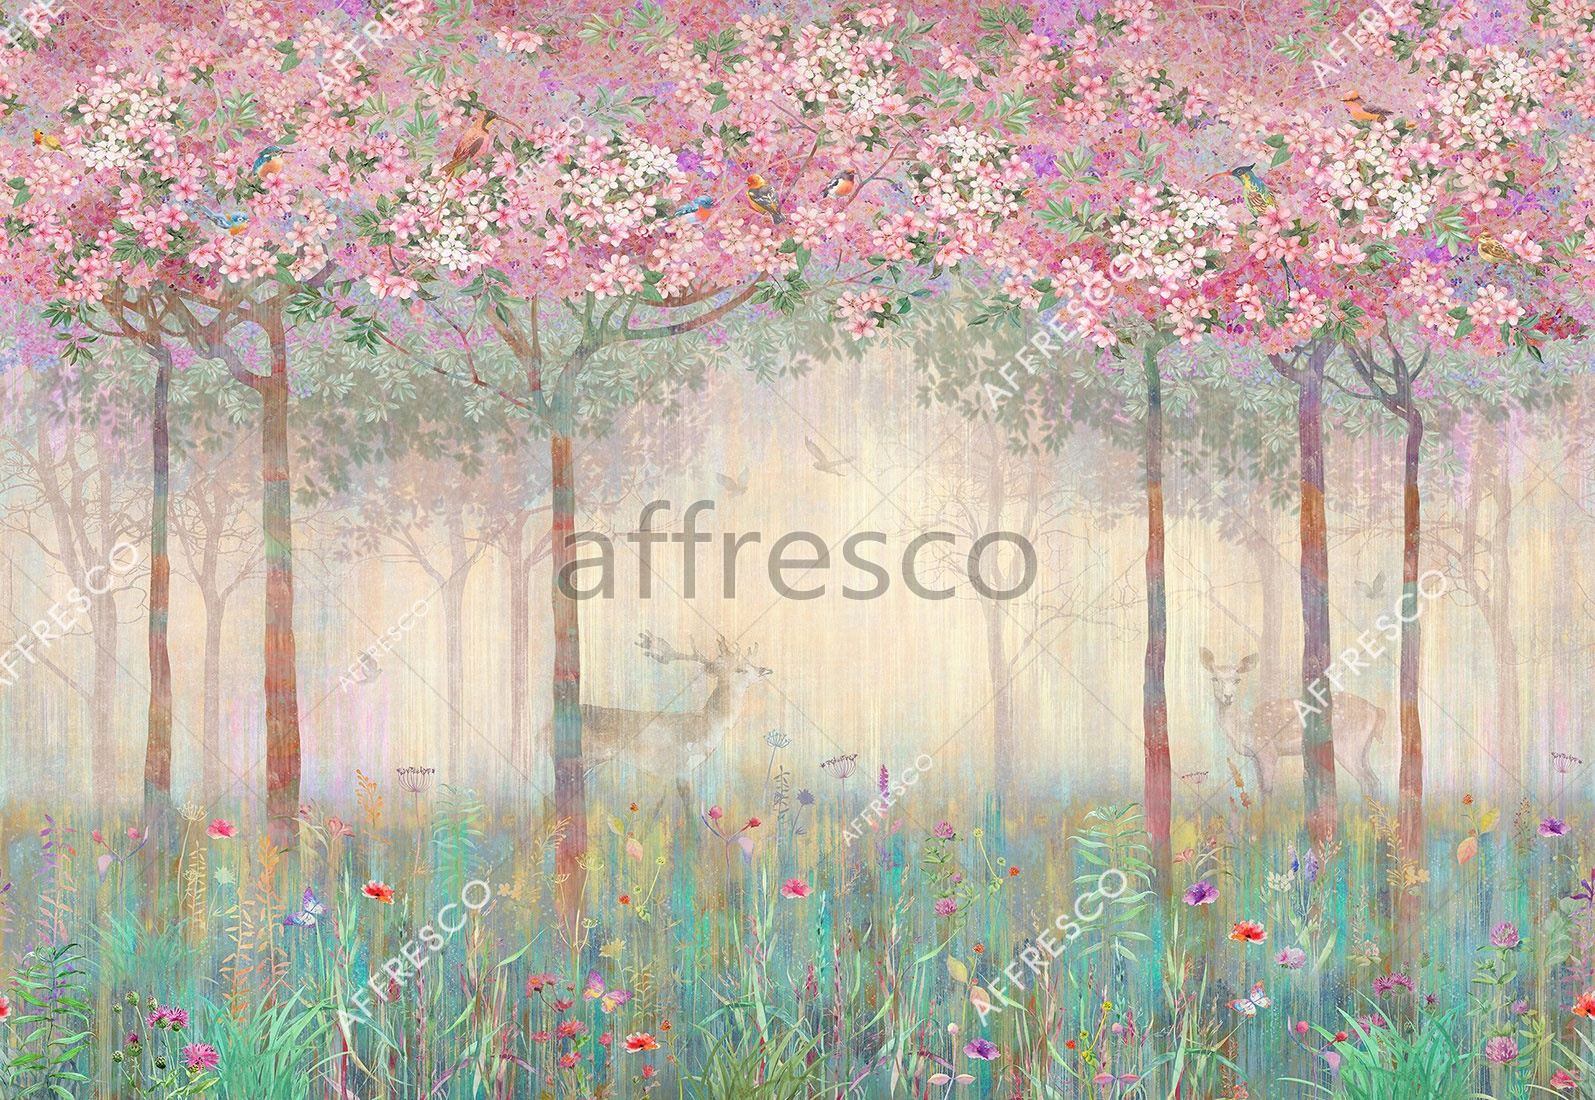 ID135970 | Forest |  | Affresco Factory